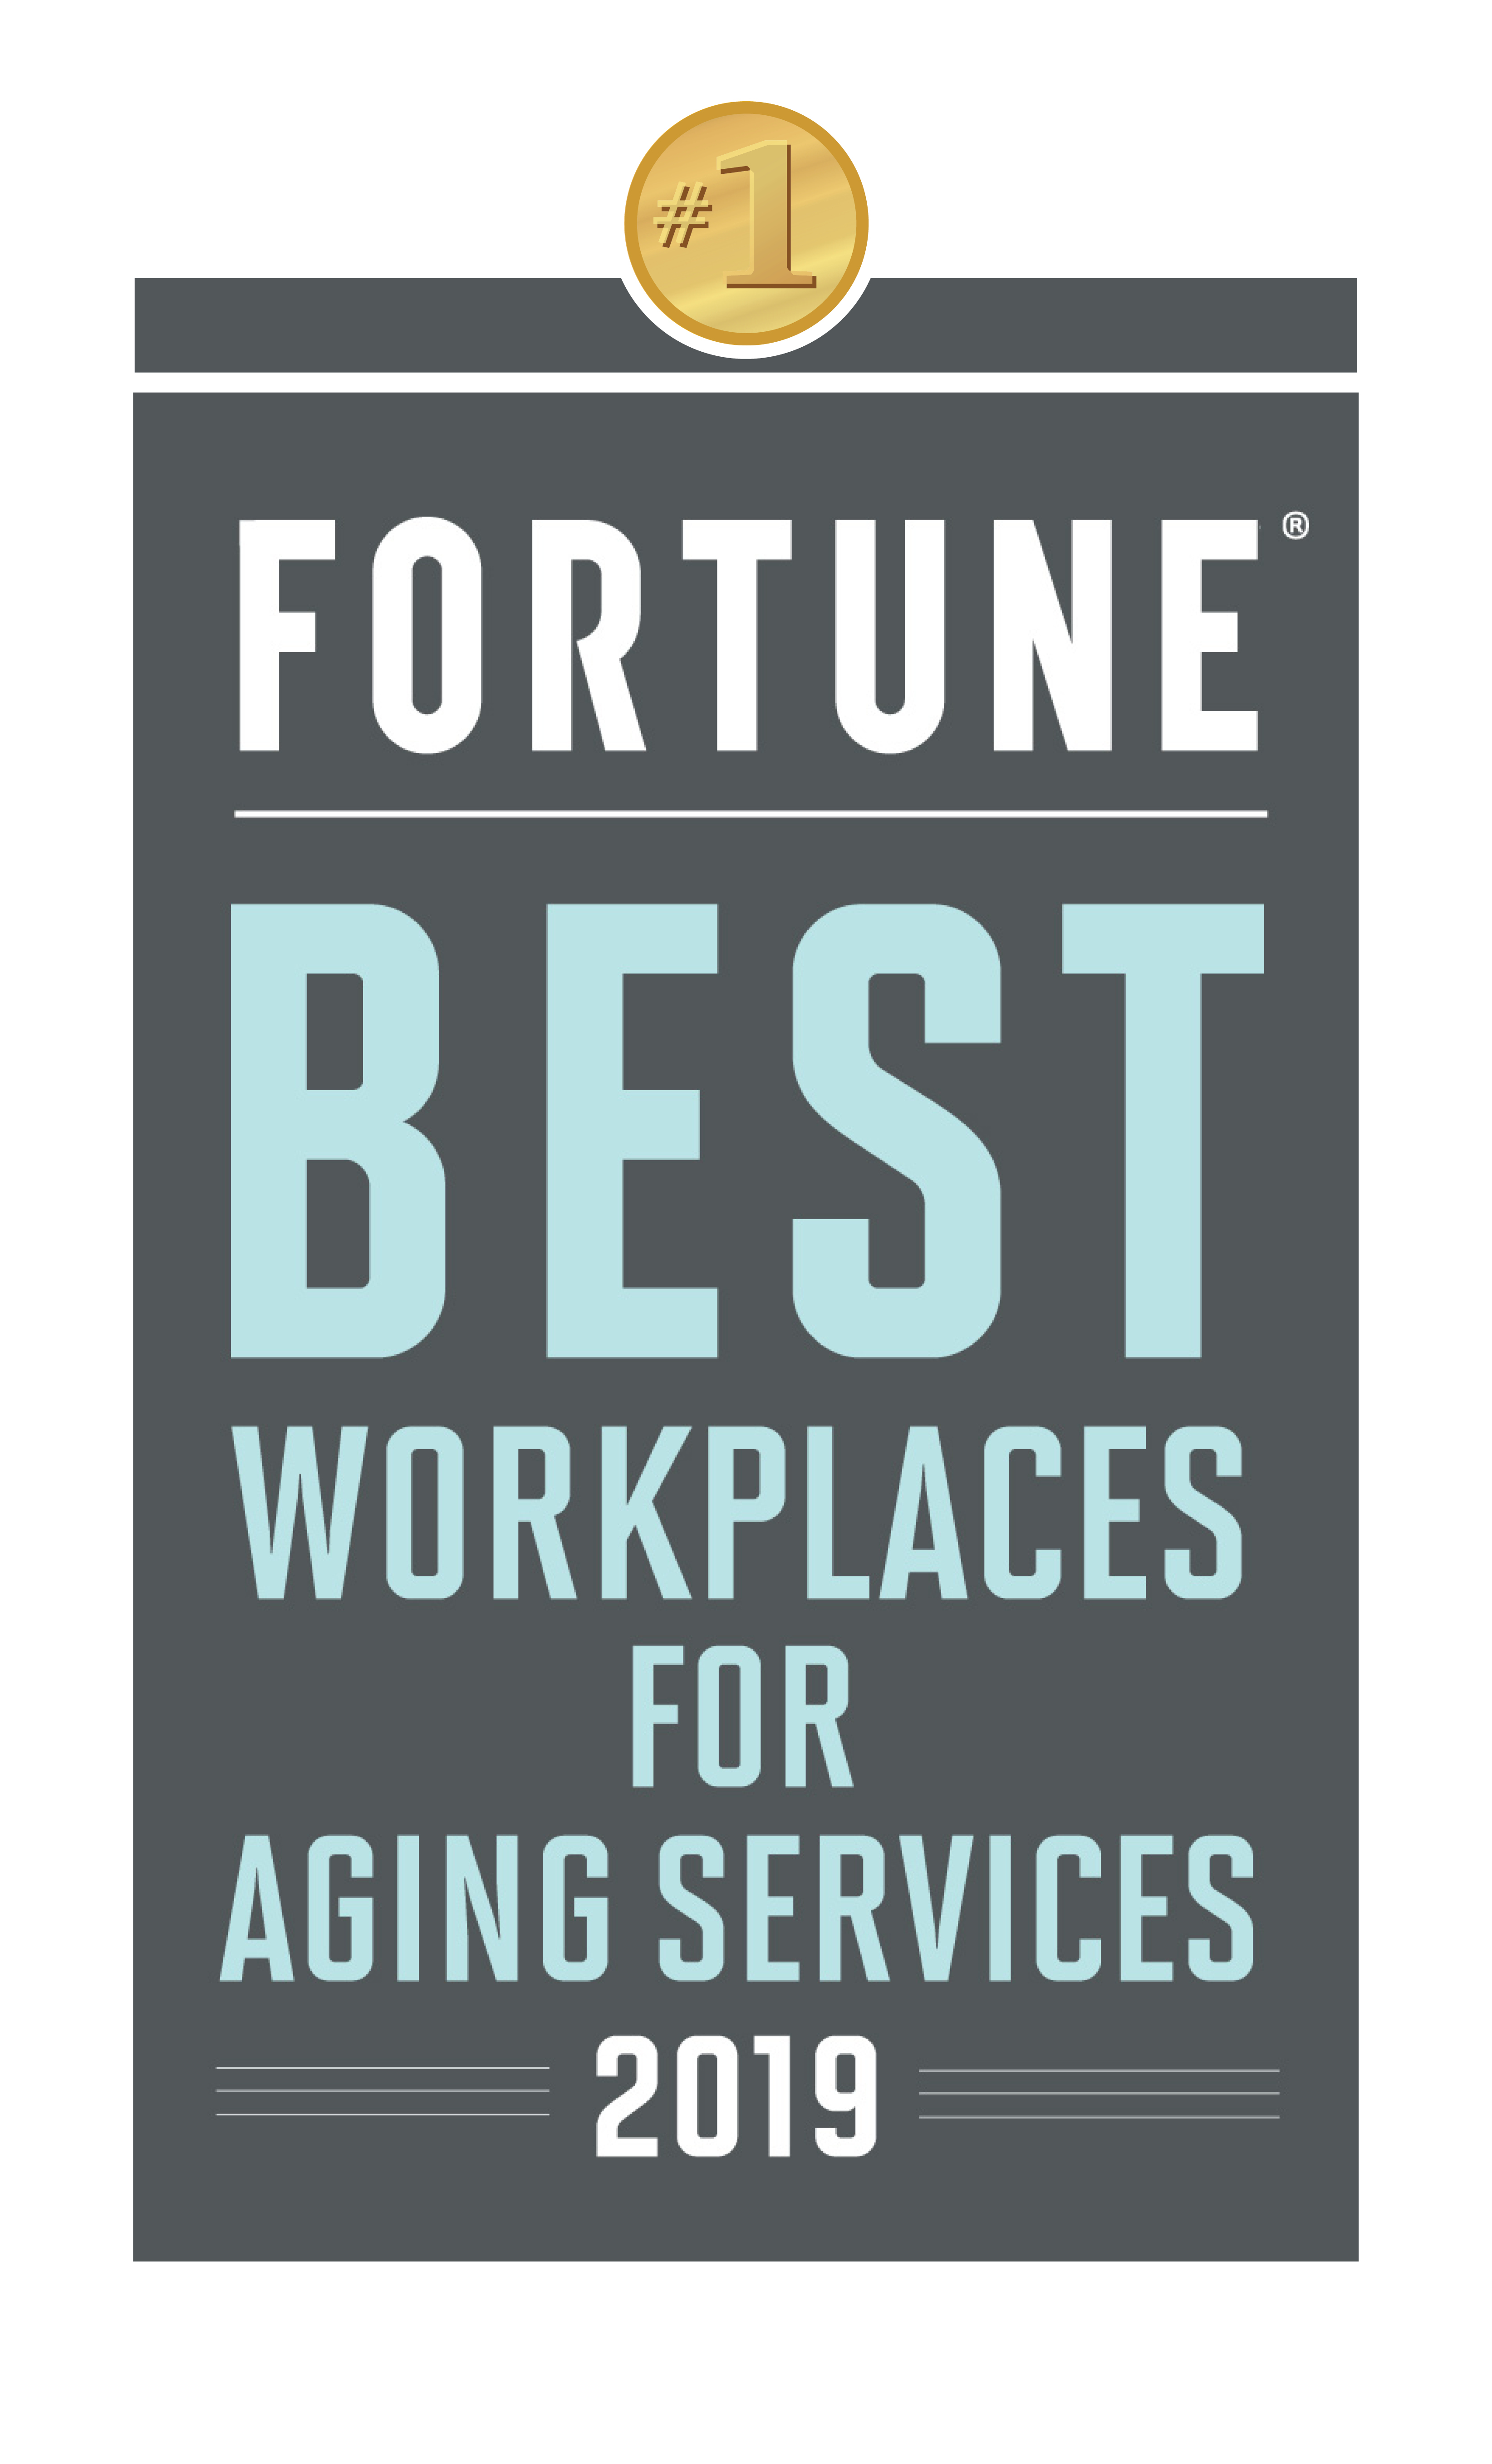 Fortune Best workplaces for aging services